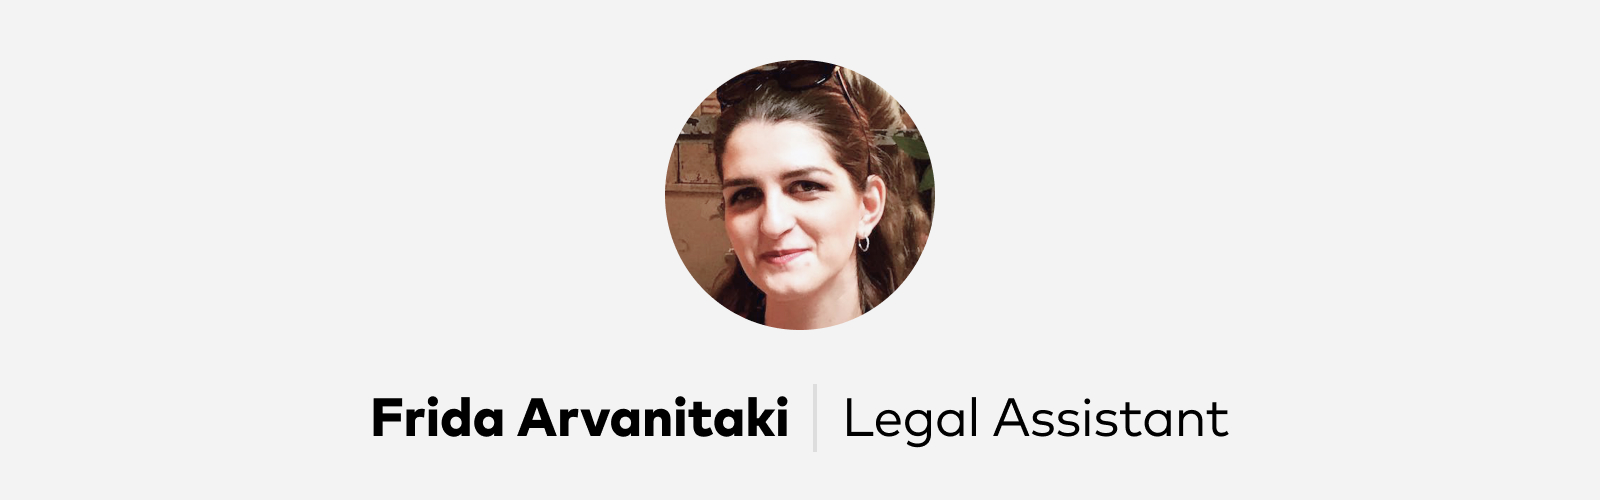 Frida Arvanitaki Legal Assistant at Pitch